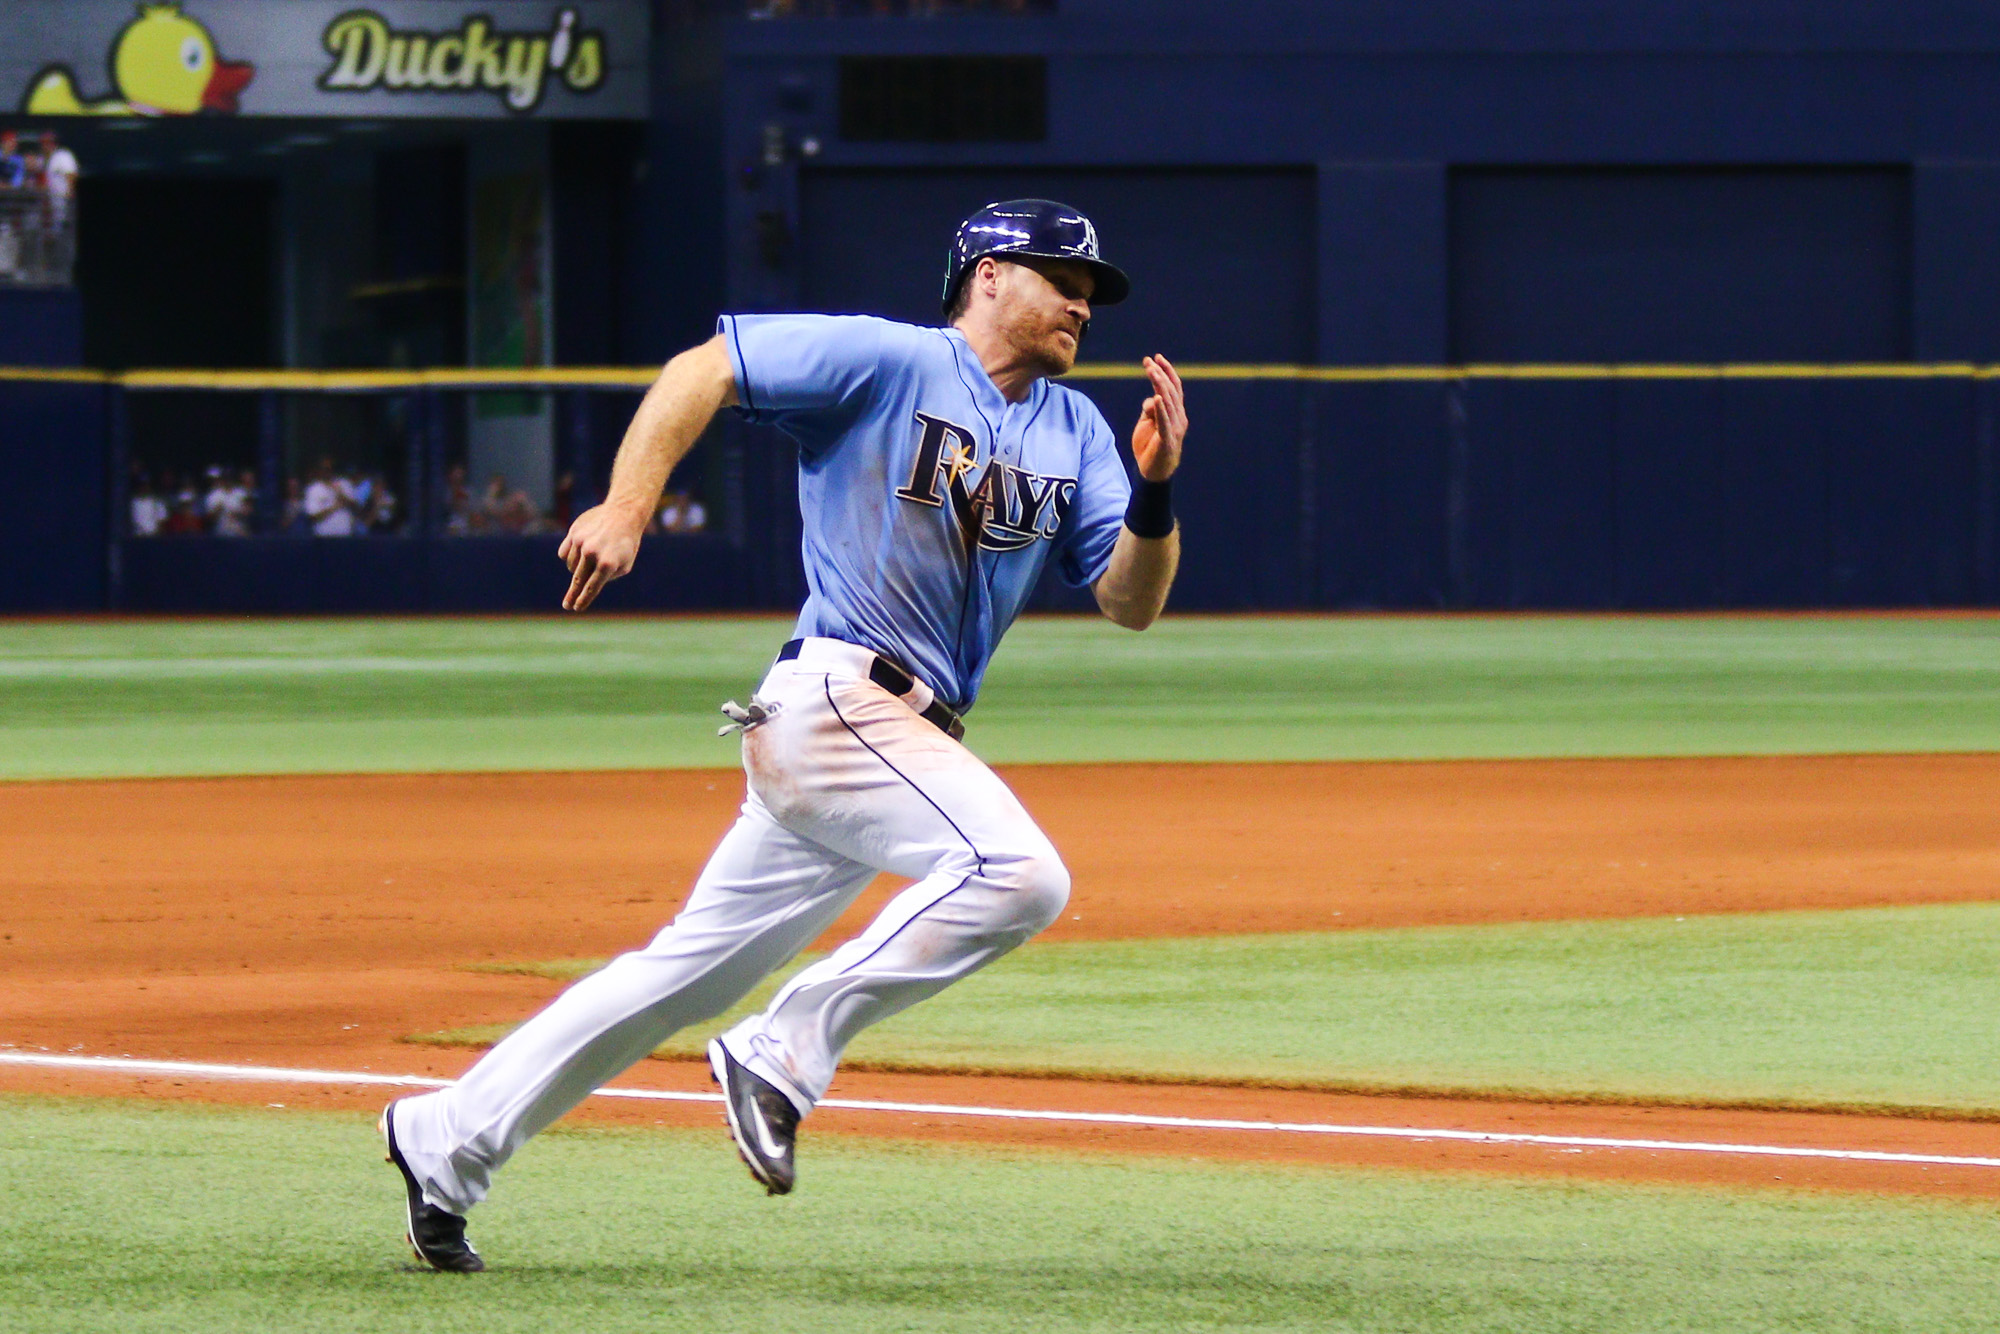 Logan Forsythe heads home after Brad Miller's single in the 8th tied the game./ANDREW J. KRAMER